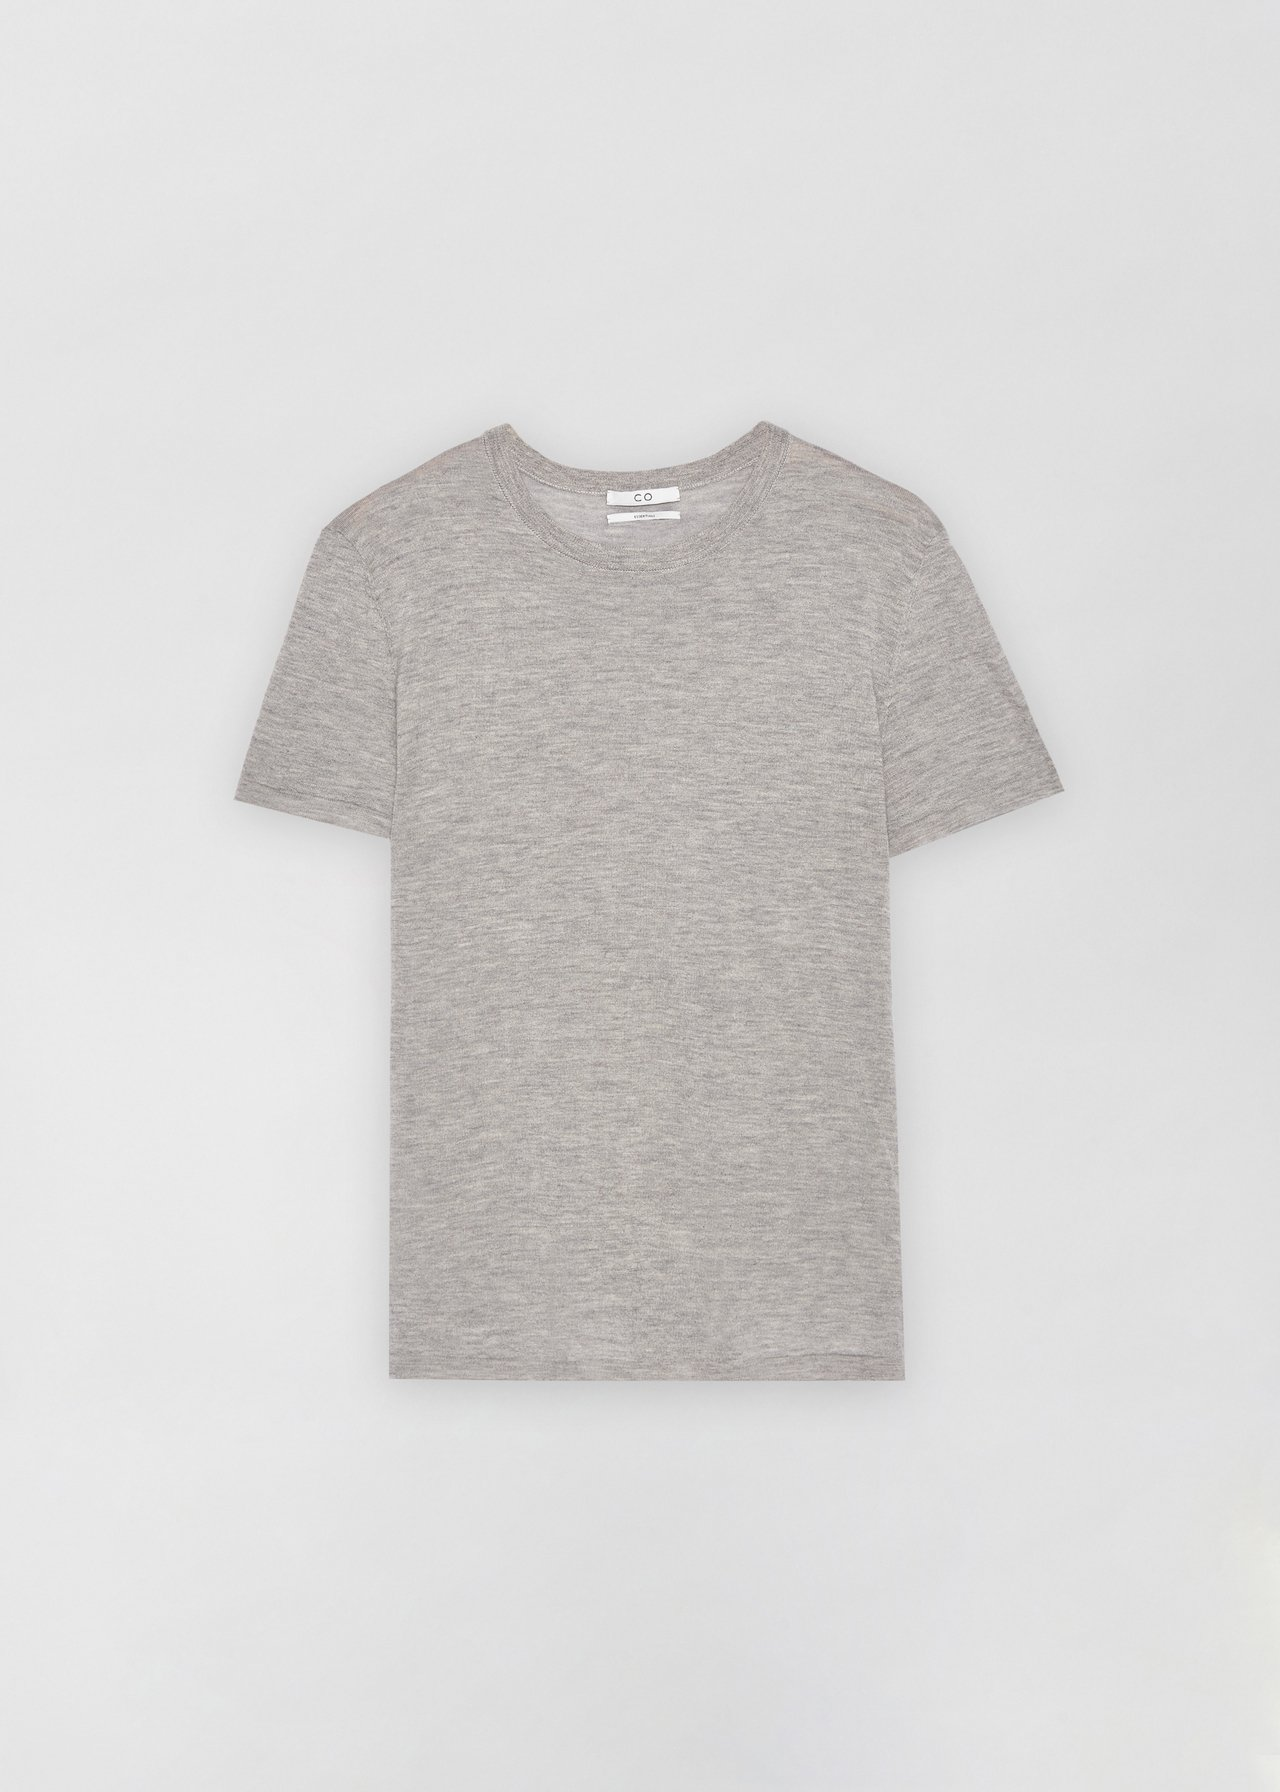 Cashmere T-Shirt - Grey in Heather by Co Collections